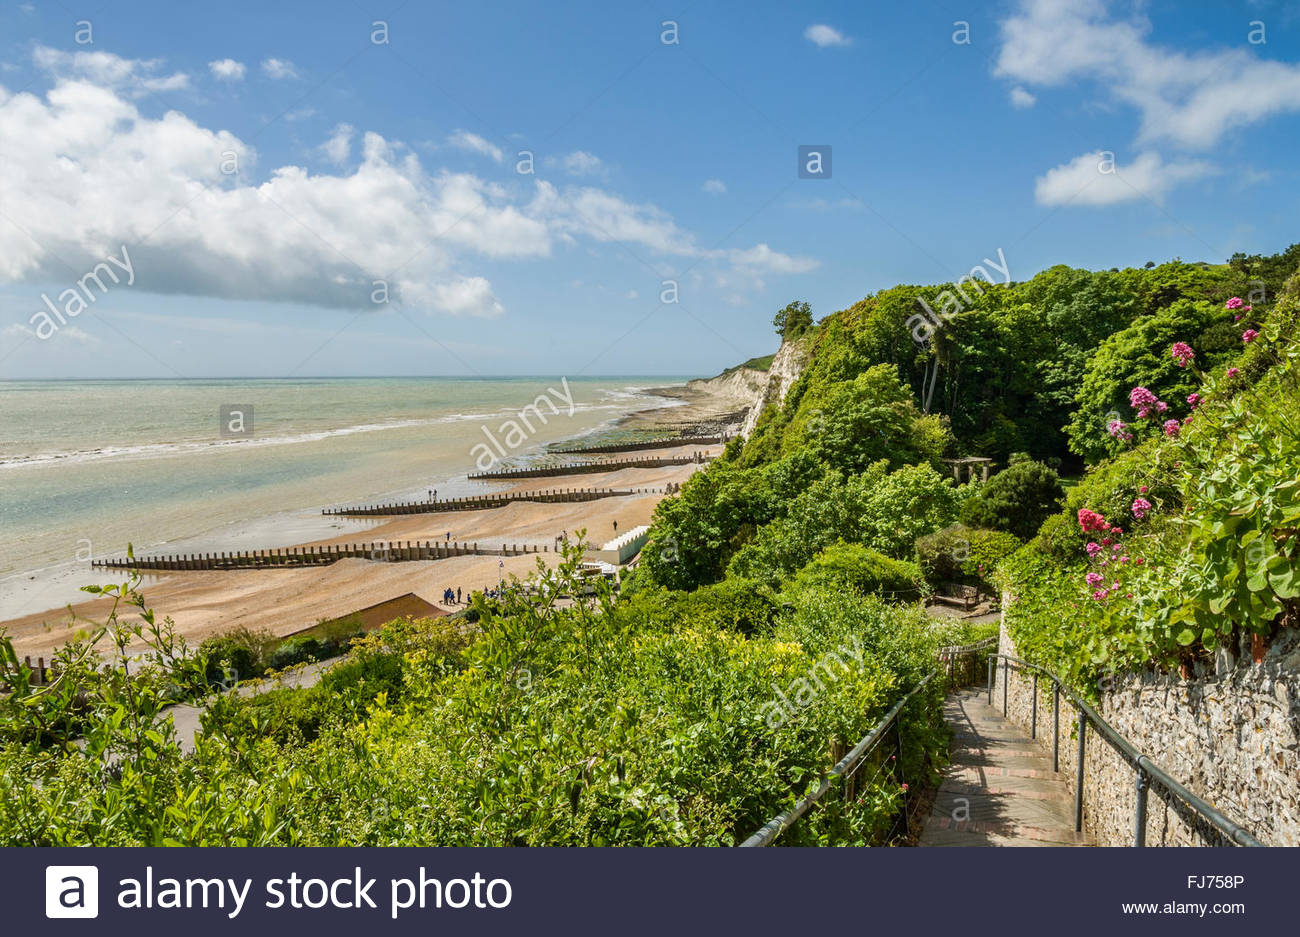 Beachy Head Nature Resort in der Nähe von Eastbourne, East Sussex, Südengland Stockbild